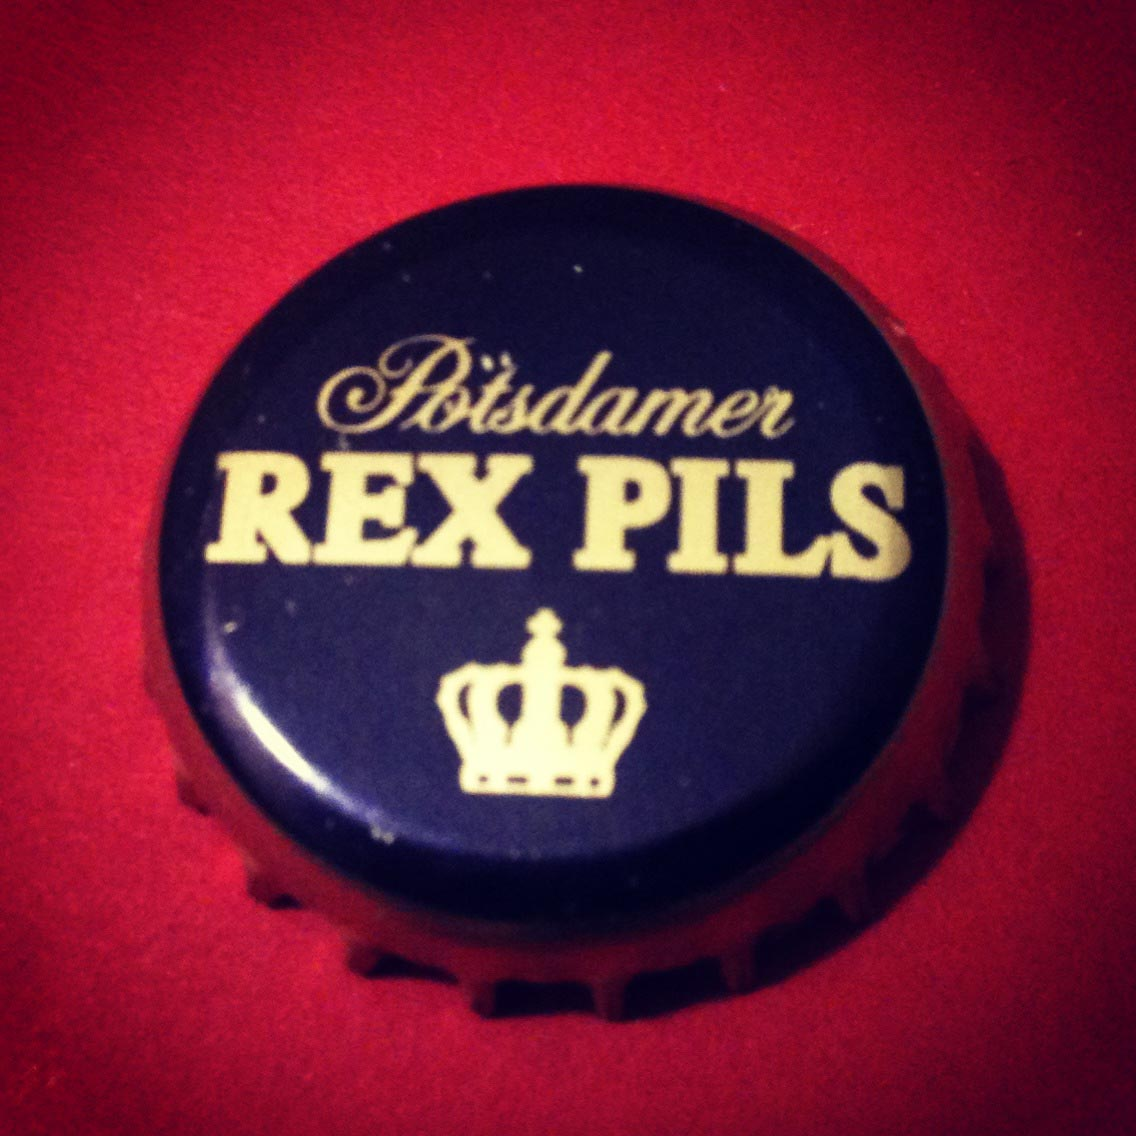 Potsdamer Rex Pils bottle top